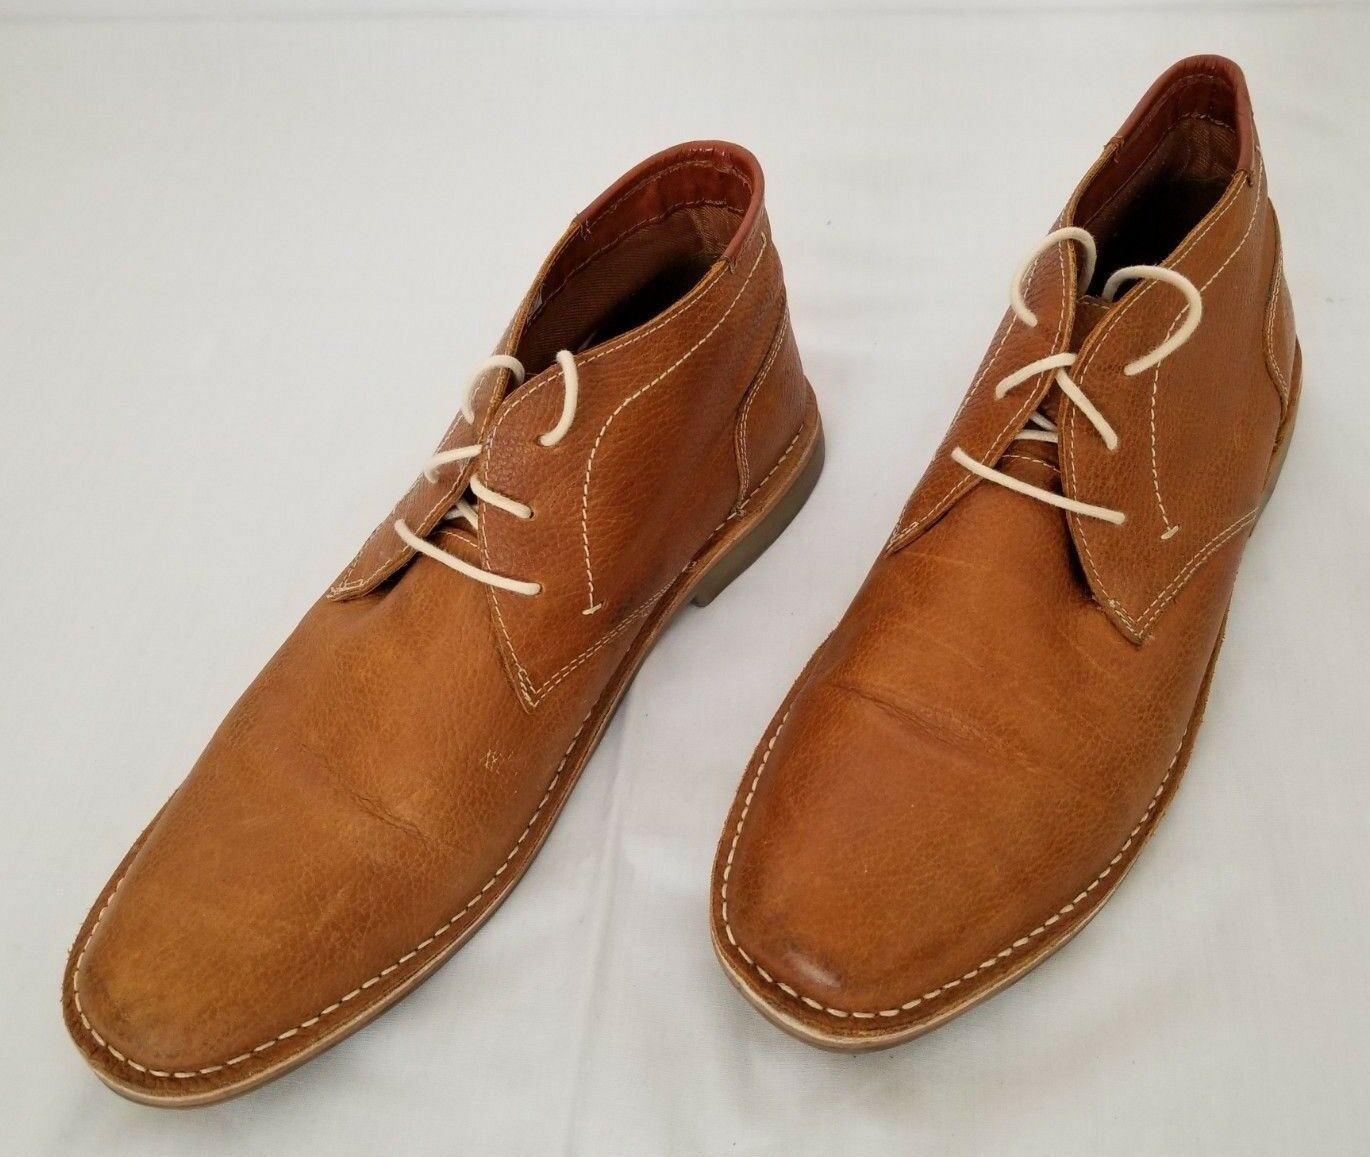 Mens Size 13 Tan Embossed Steve Madden Helman-A Leather Boot shoes preowned